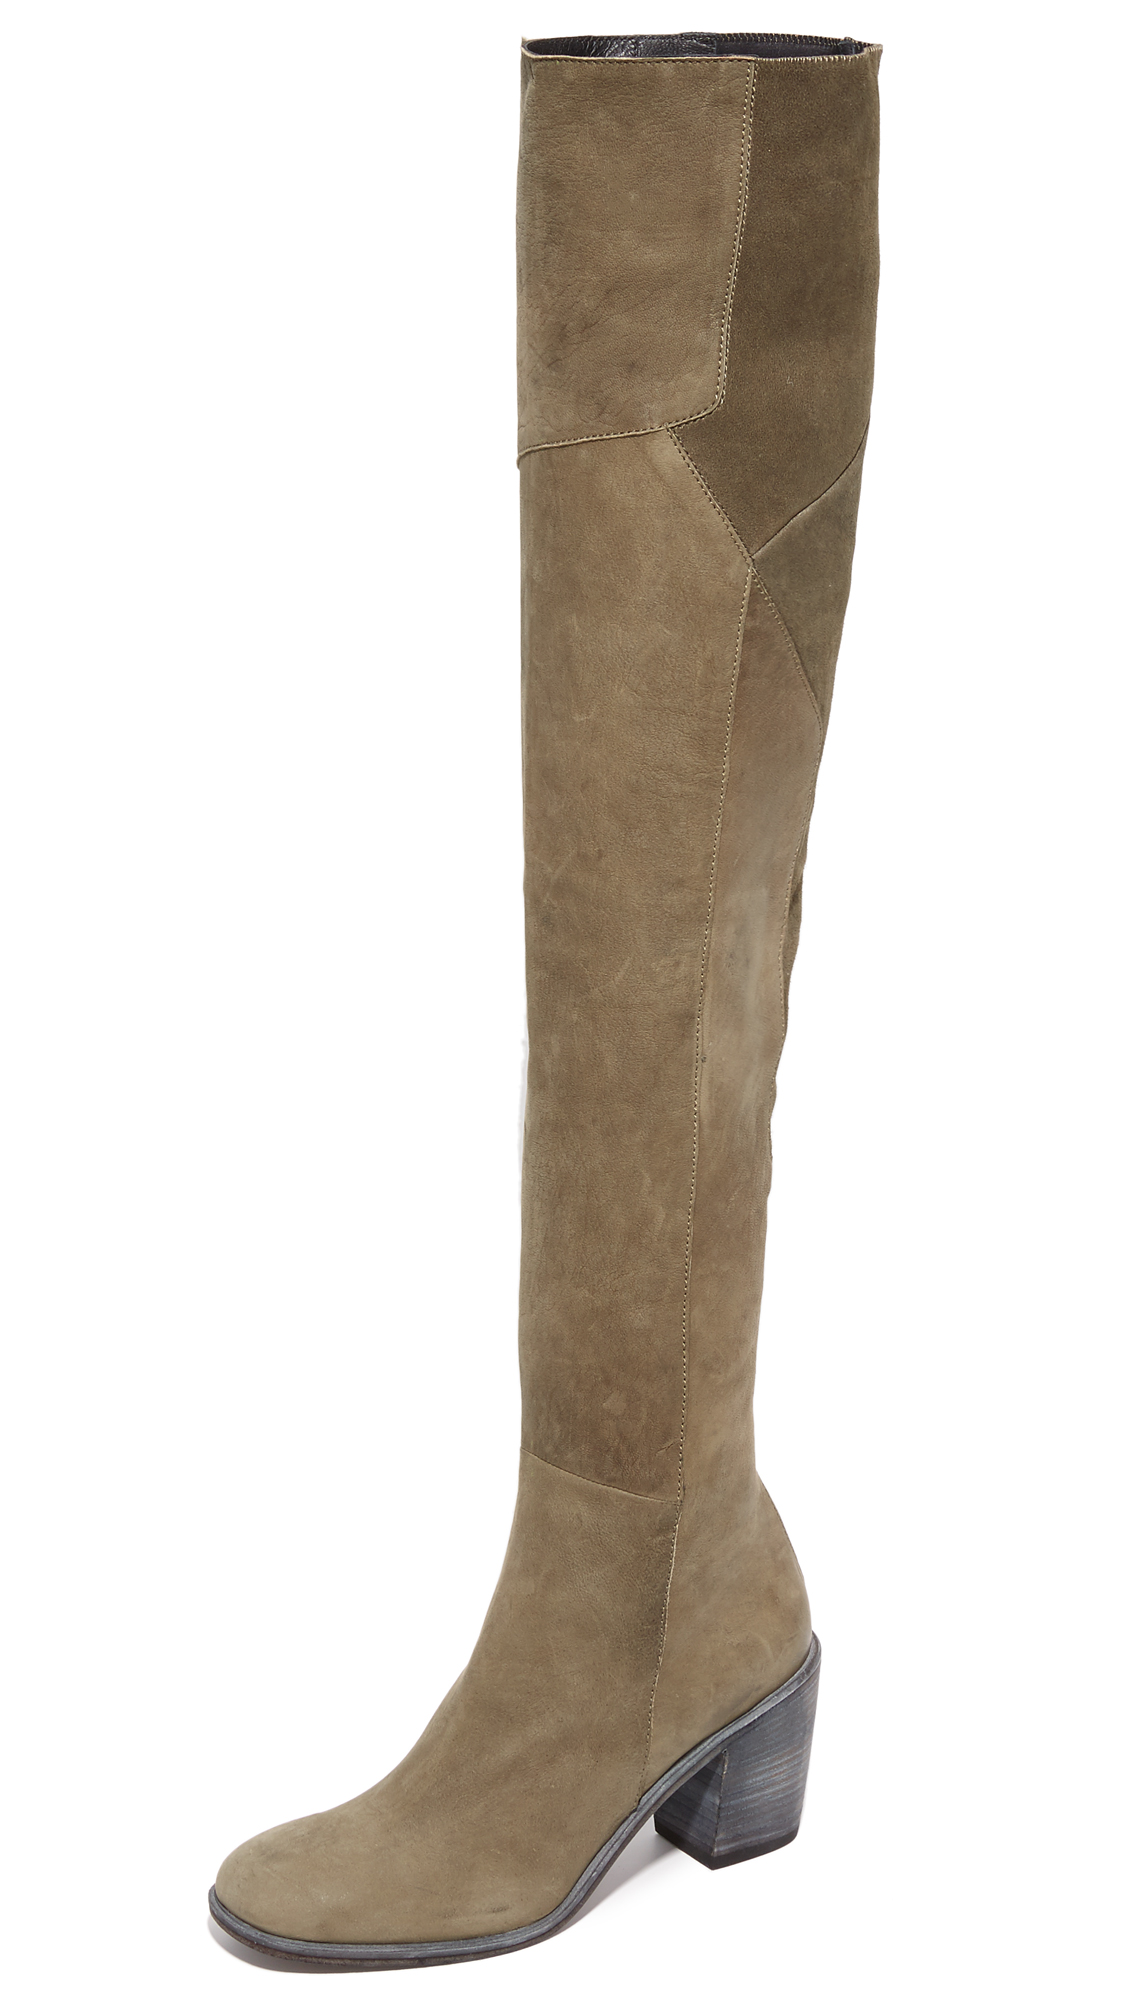 Ld Tuttle The Torch Over The Knee Boots - Lichen